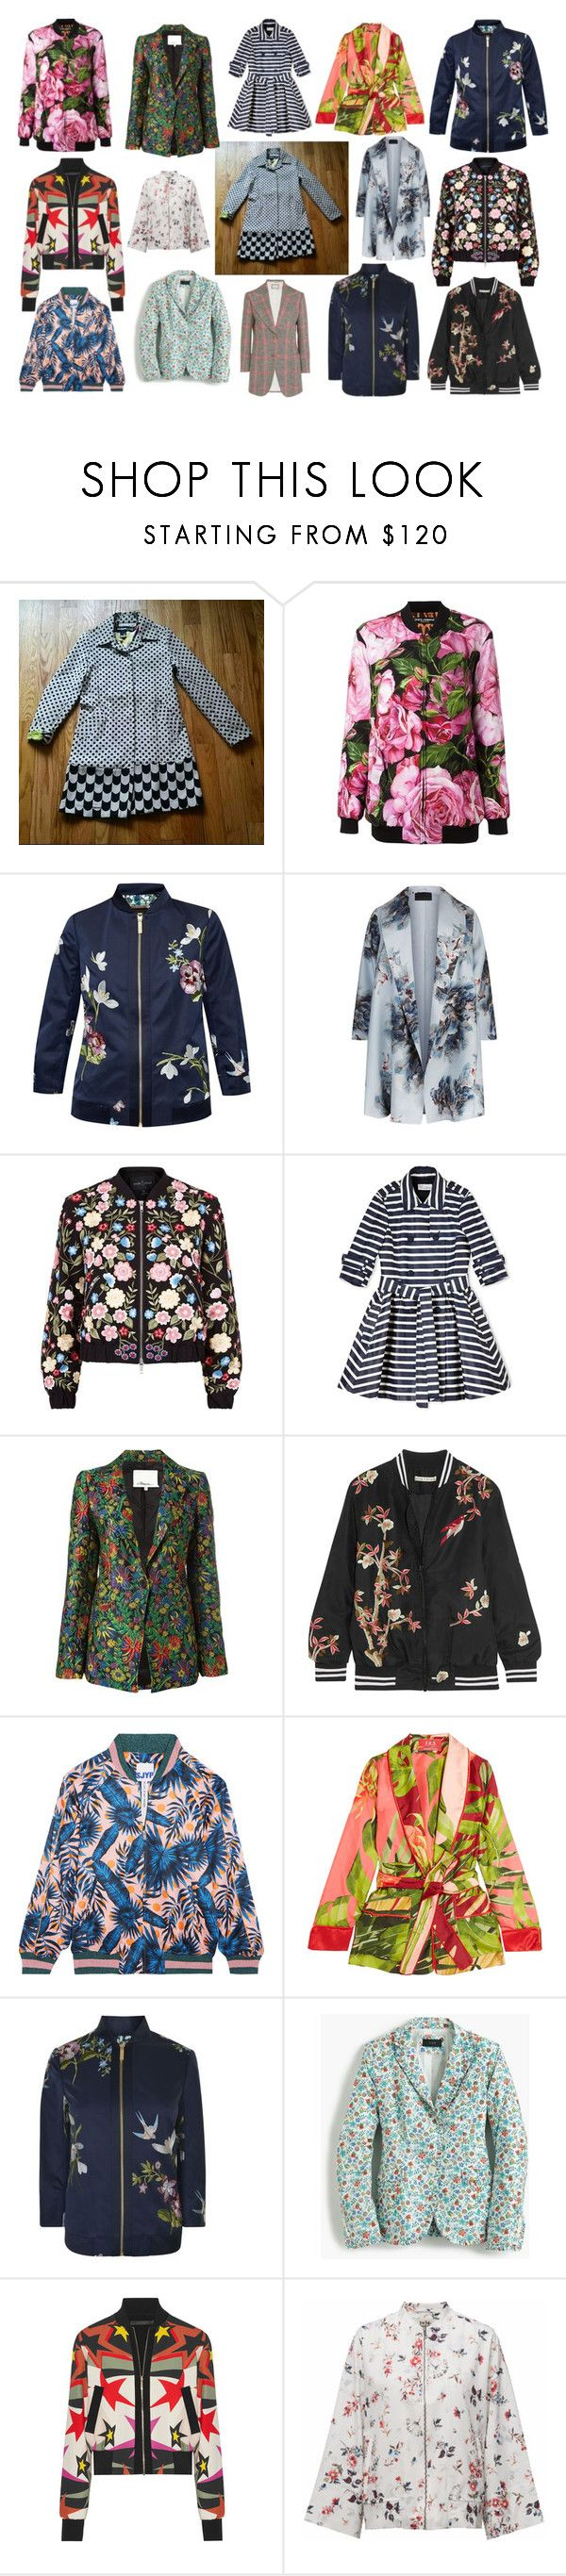 """Spring Jacket! #spring2017 #outerwear"" by sebmarketbk on Polyvore featuring Dolce&Gabbana, Ted Baker, Marina Rinaldi, Needle & Thread, RED Valentino, 3.1 Phillip Lim, Alice + Olivia, Steve J & Yoni P, F.R.S For Restless Sleepers and J.Crew"